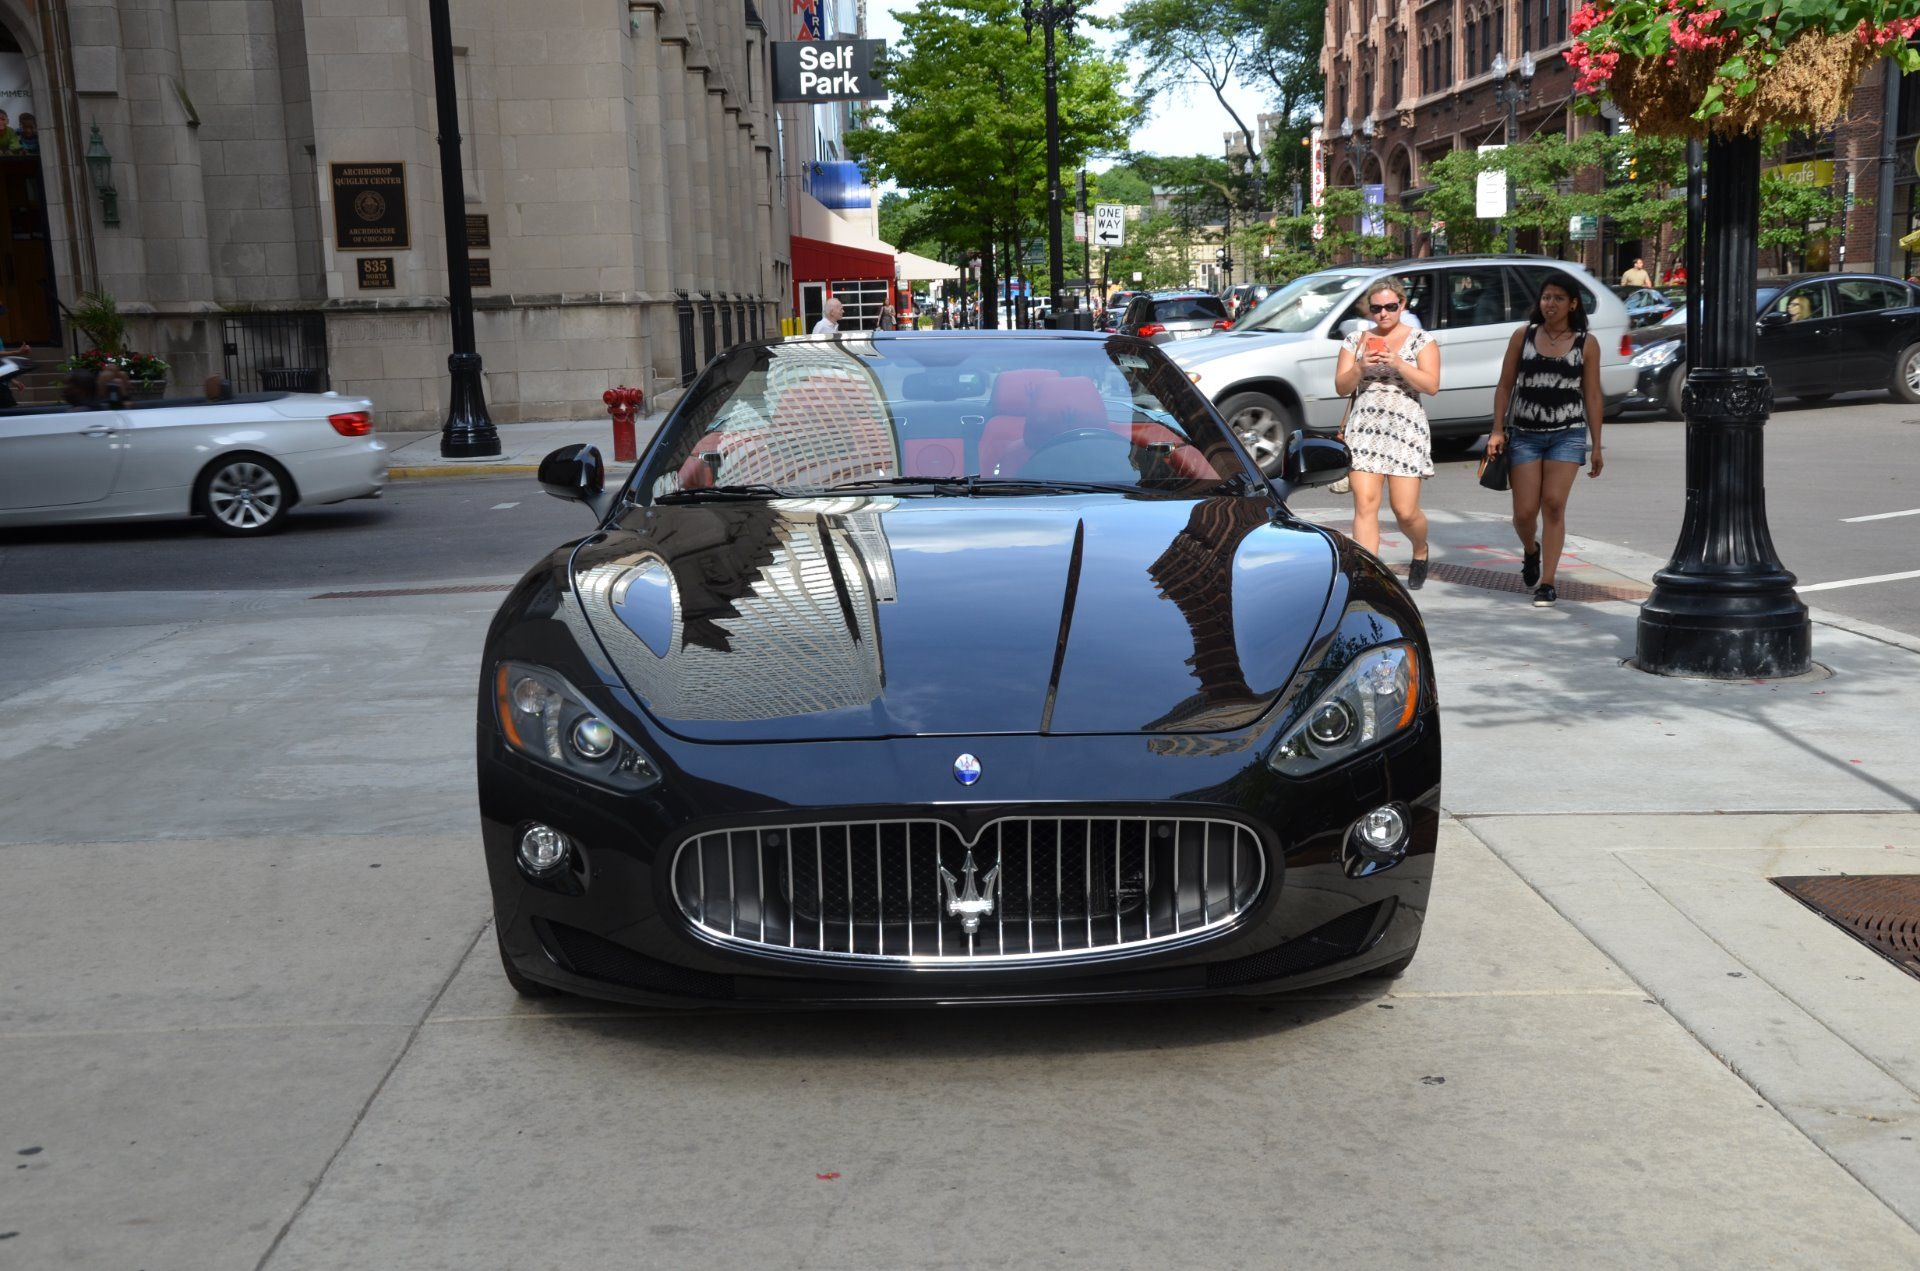 16+ Maseratis for sale near me background